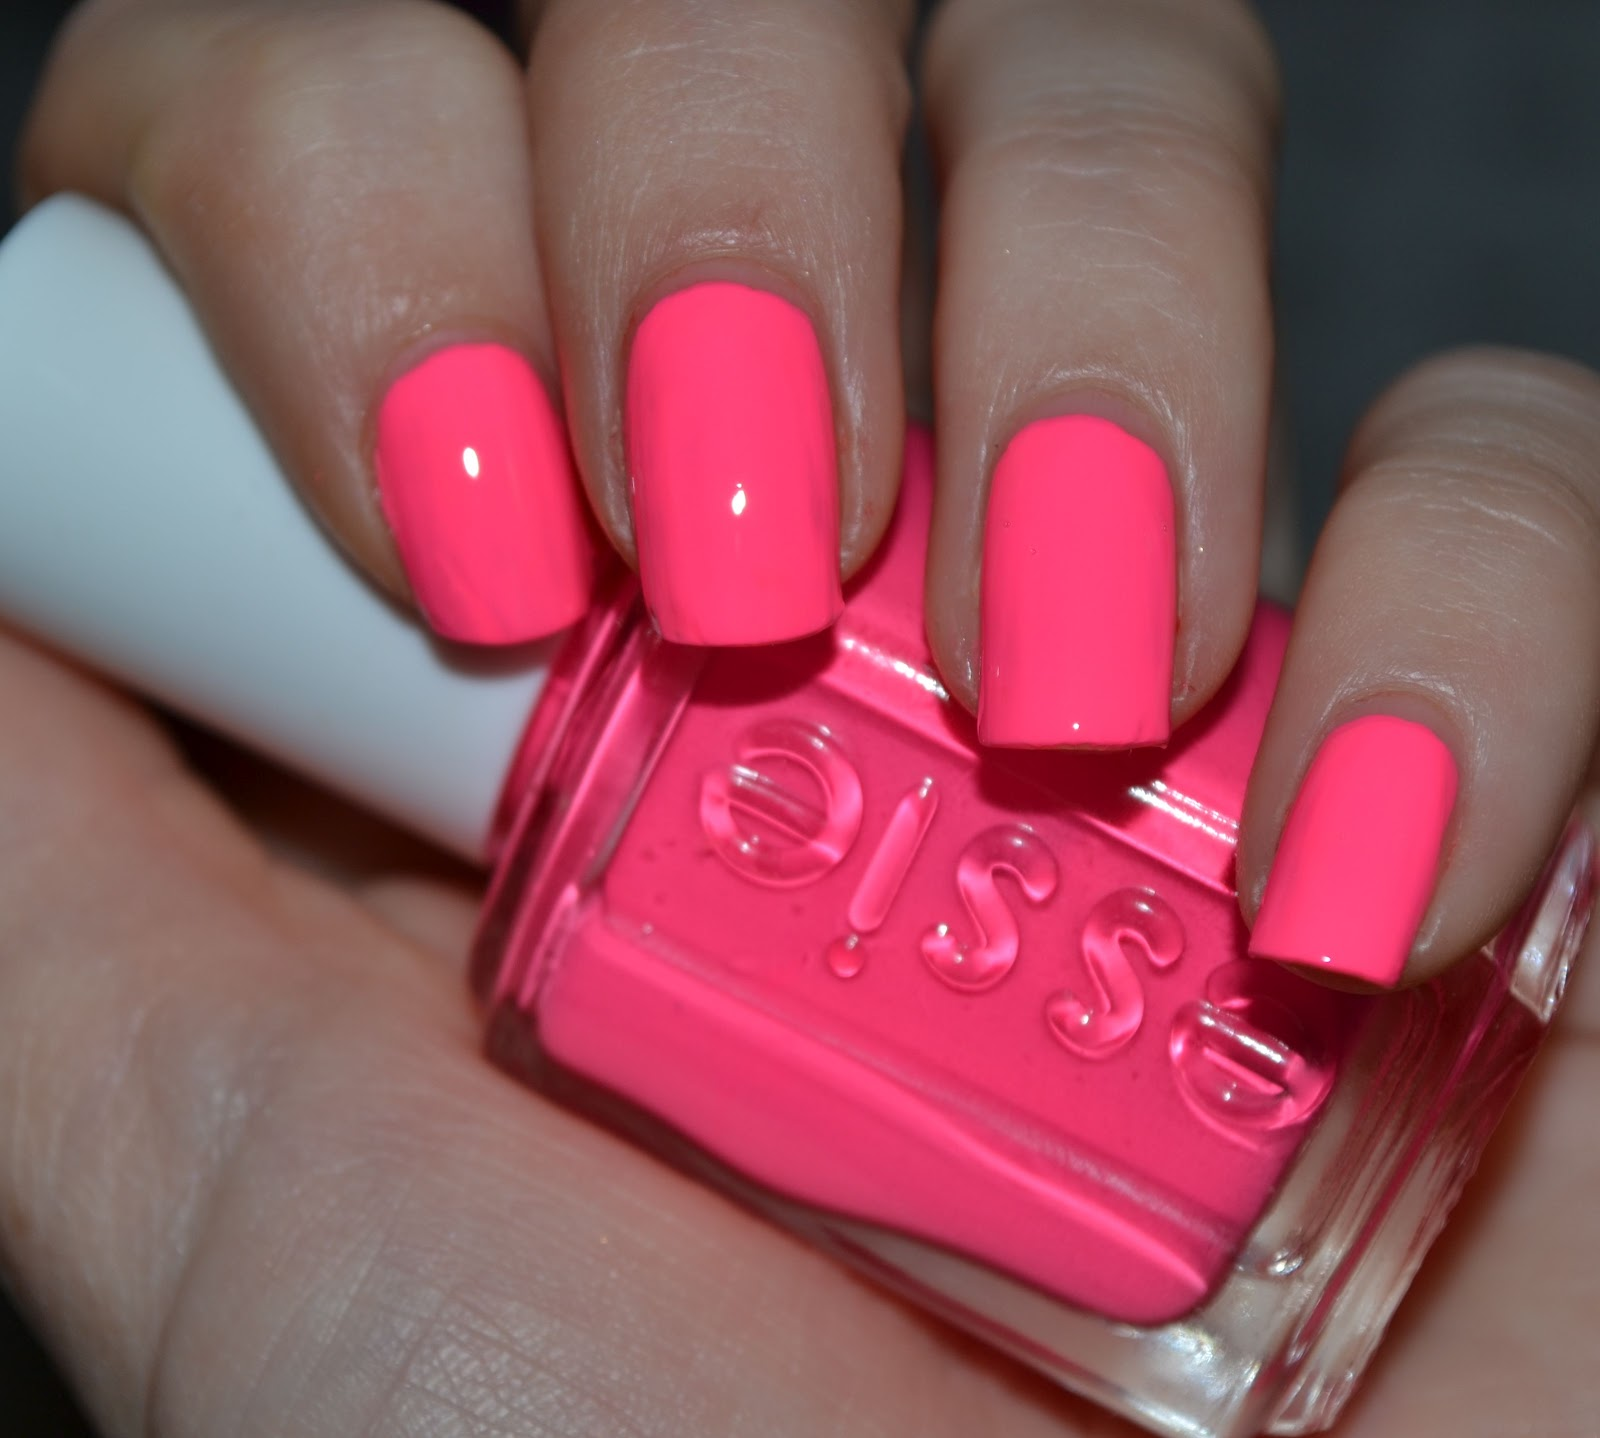 Bright Pink Nail Polish Colors: MakeUpVitamins: Essie Punchy Pink 694 Swatch, Review & Dupes